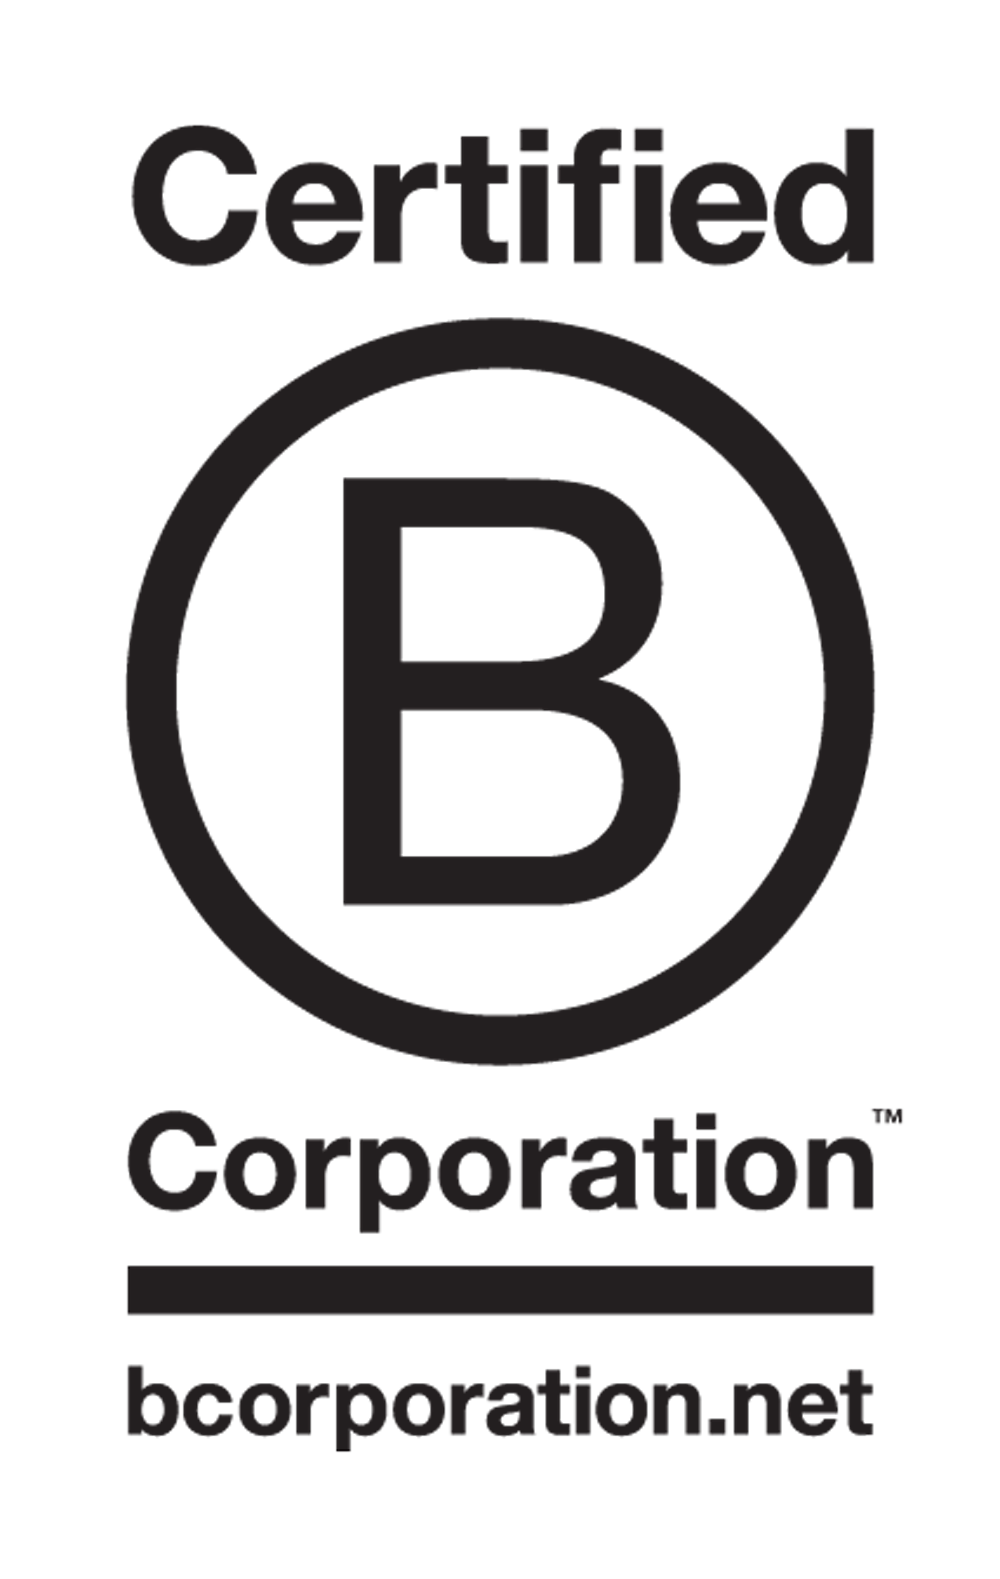 BCorp_logo_transparent.png